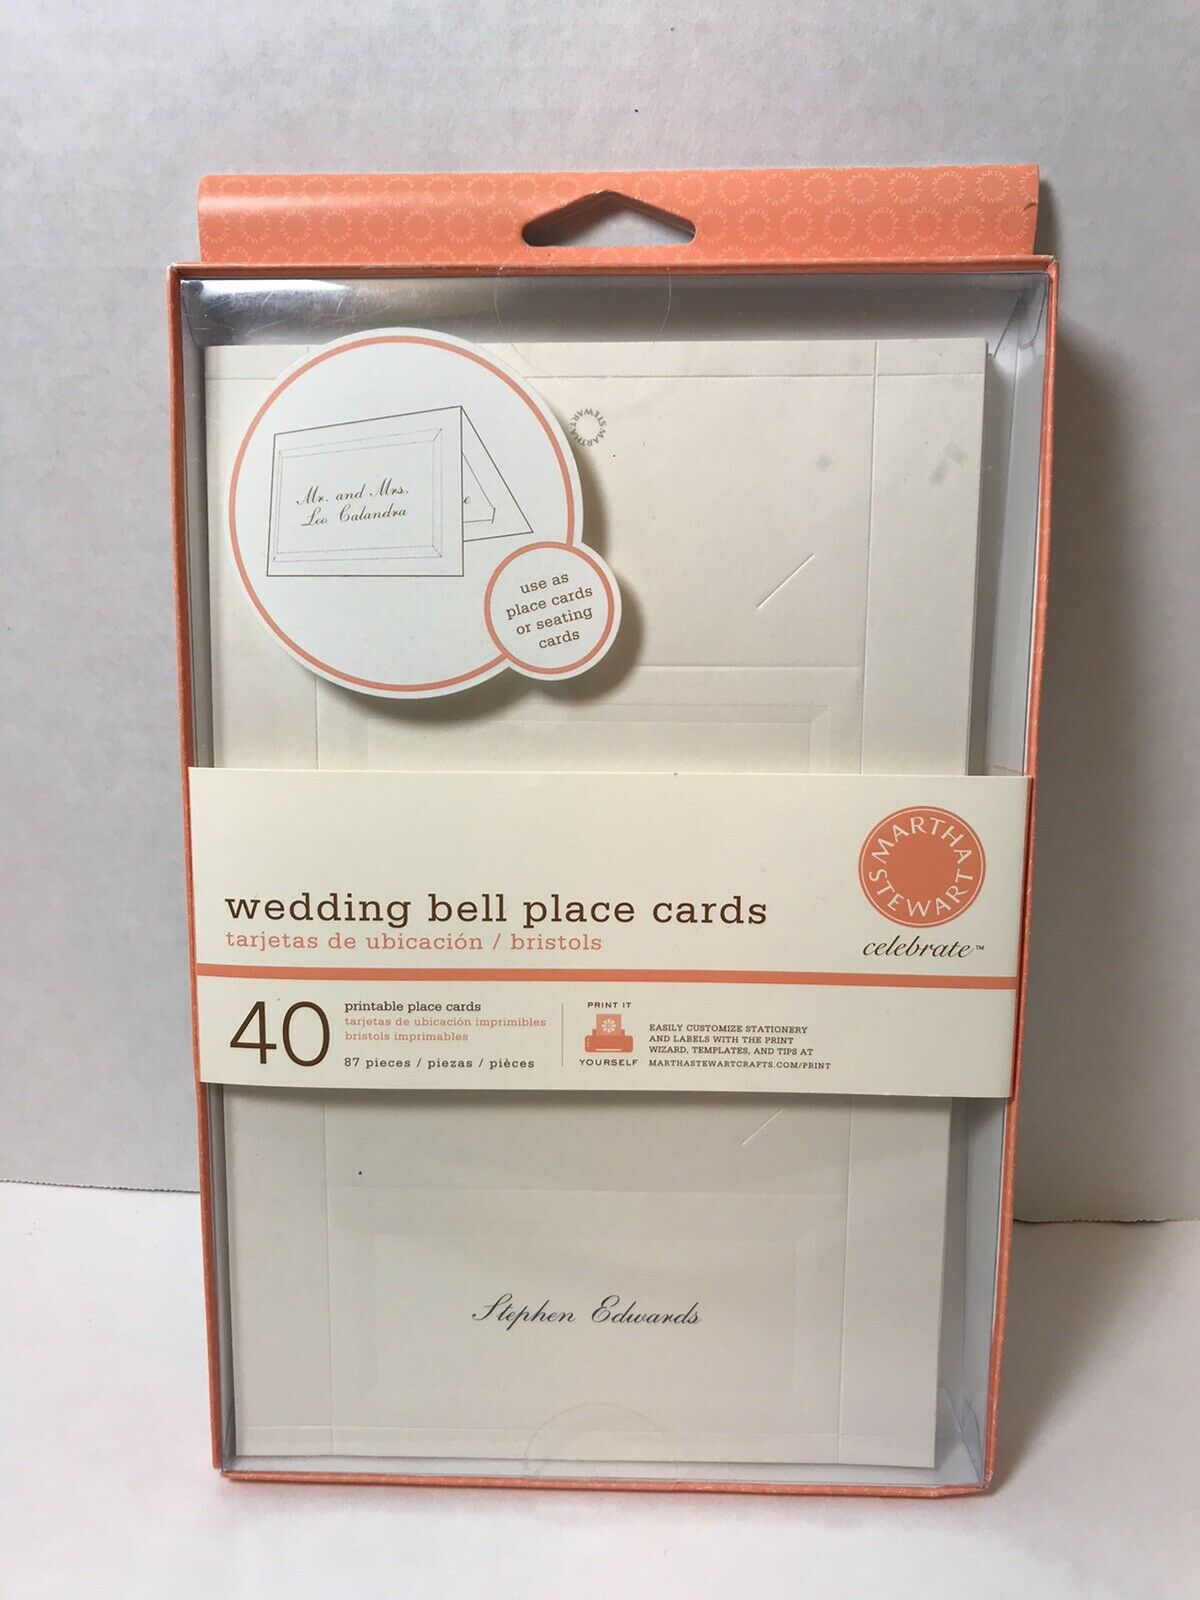 New Martha Stewart Celebrate 40 Wedding Bell Theme Place Cards Ivory For Sale Online